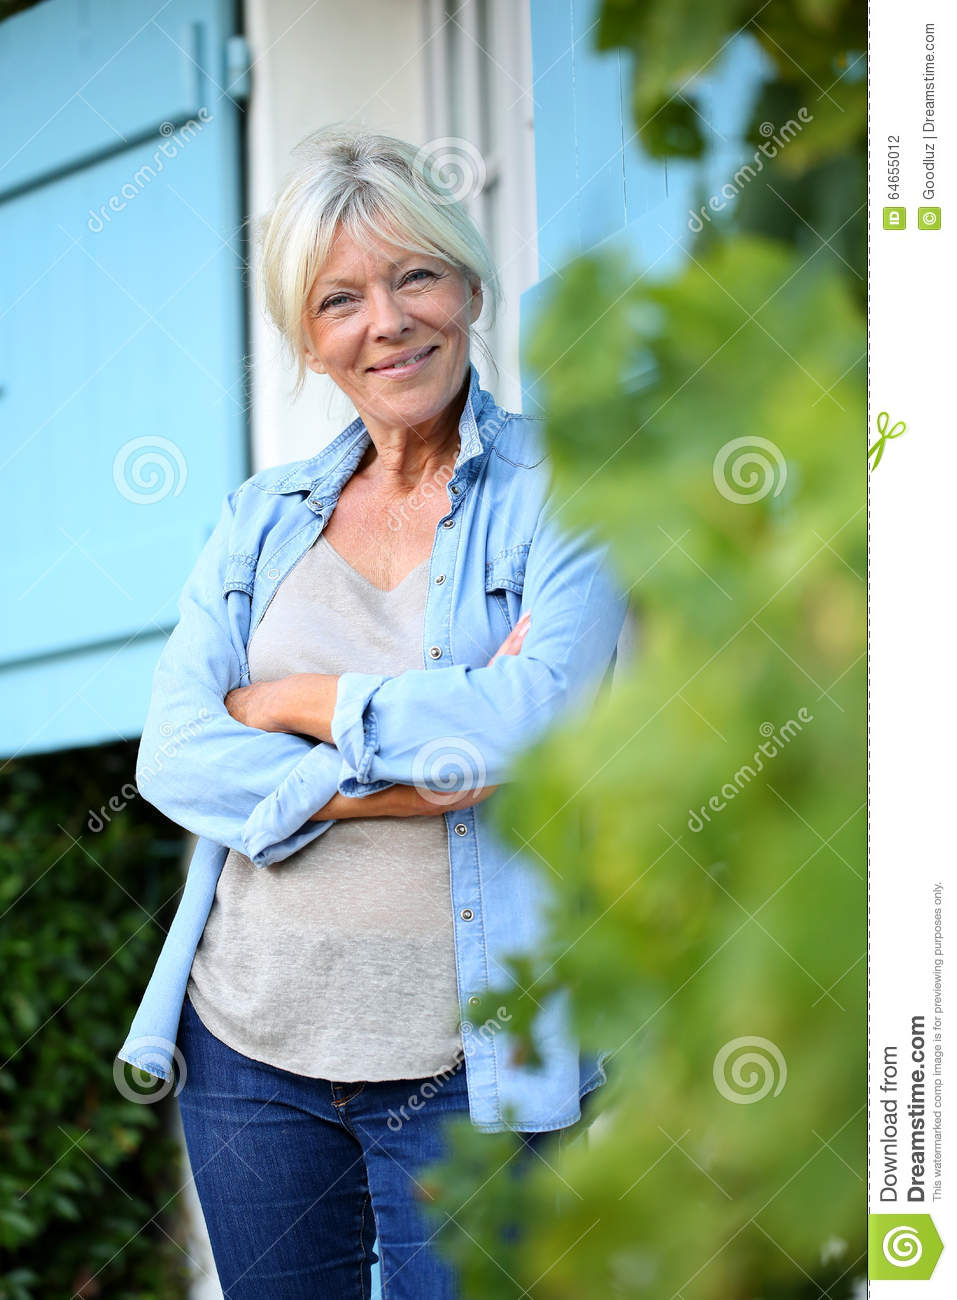 Senior woman standing in front of home